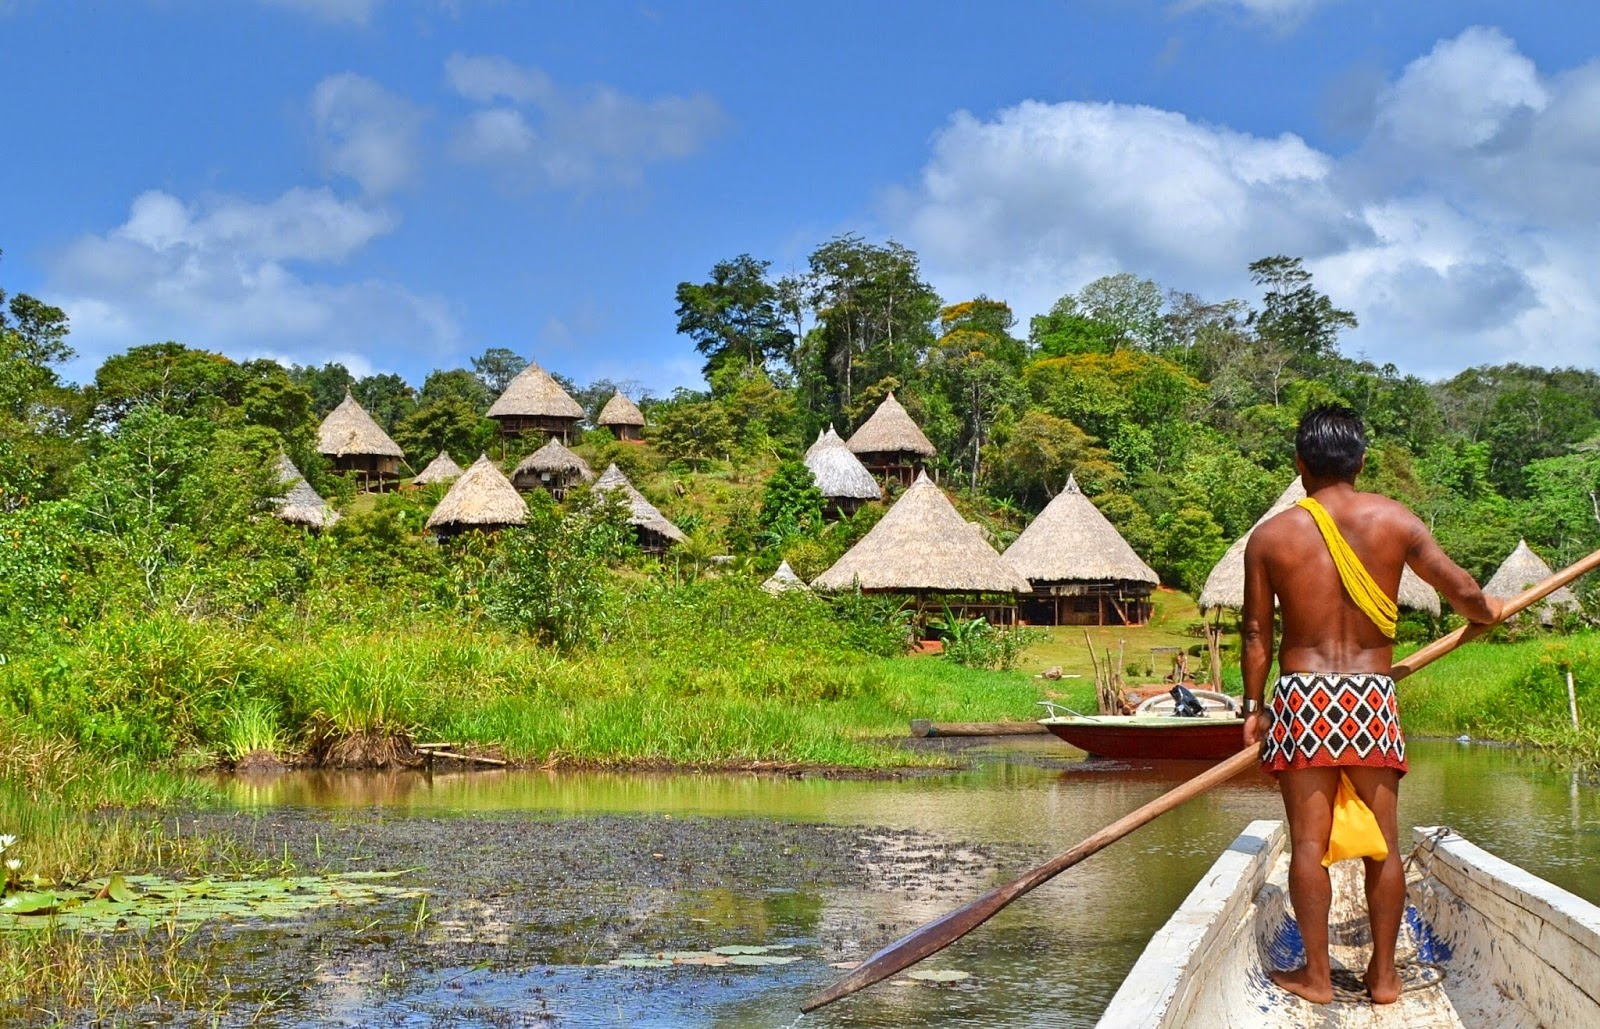 Travel in the nature: Embera Quera village Panama